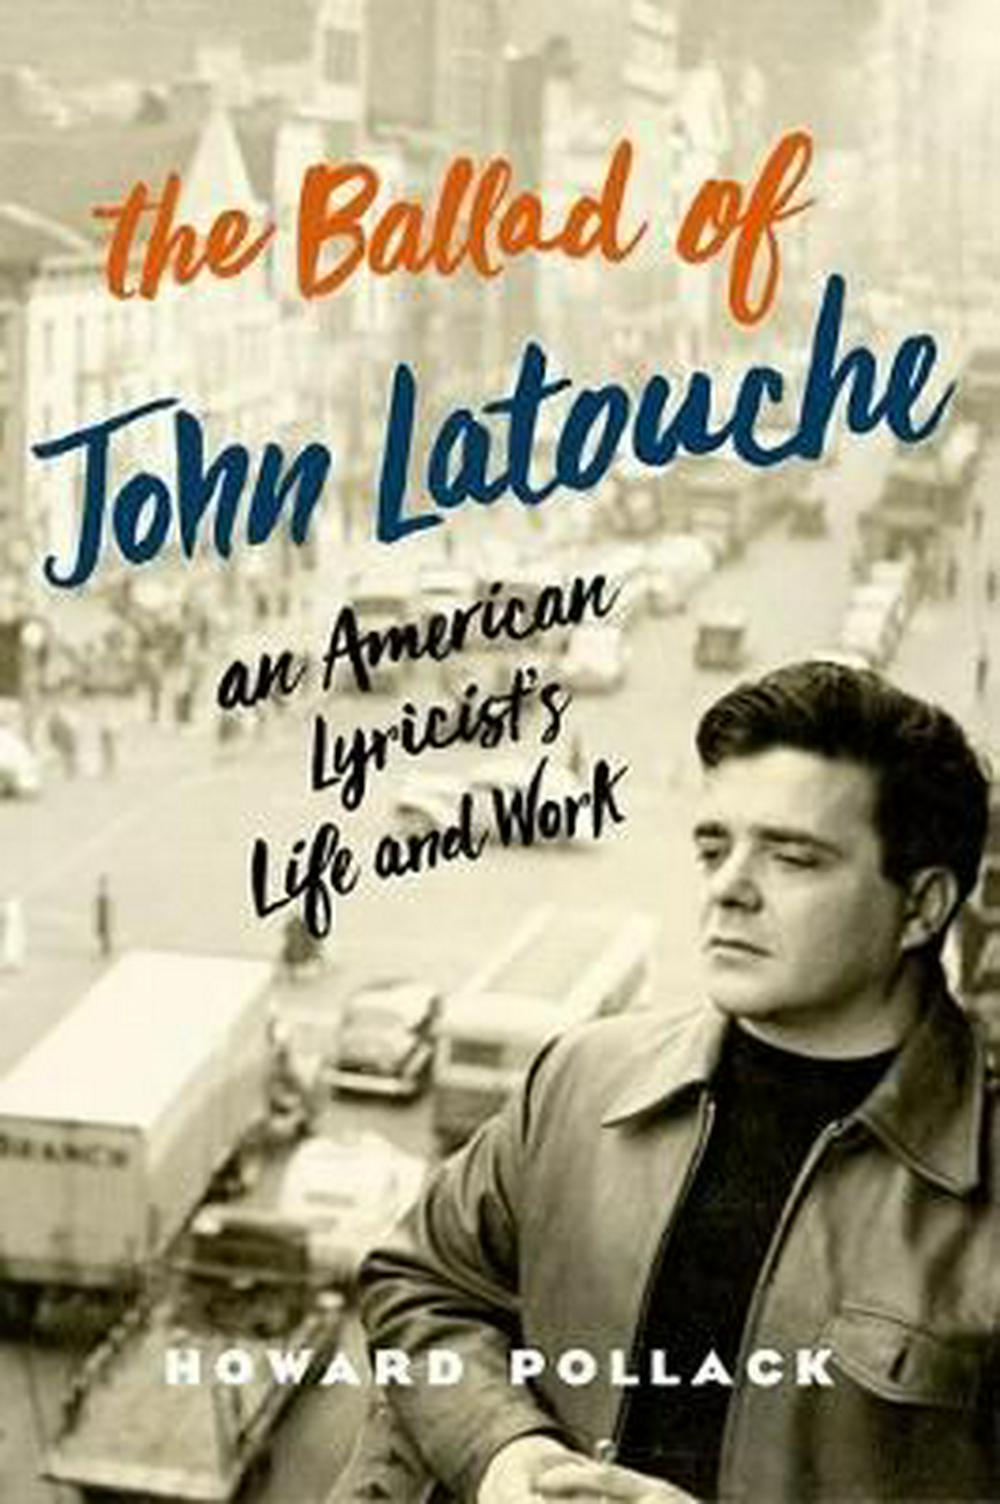 The Ballad of John LatoucheAn American Lyricist's Life and Work by Howard Pollack, ISBN: 9780190458294